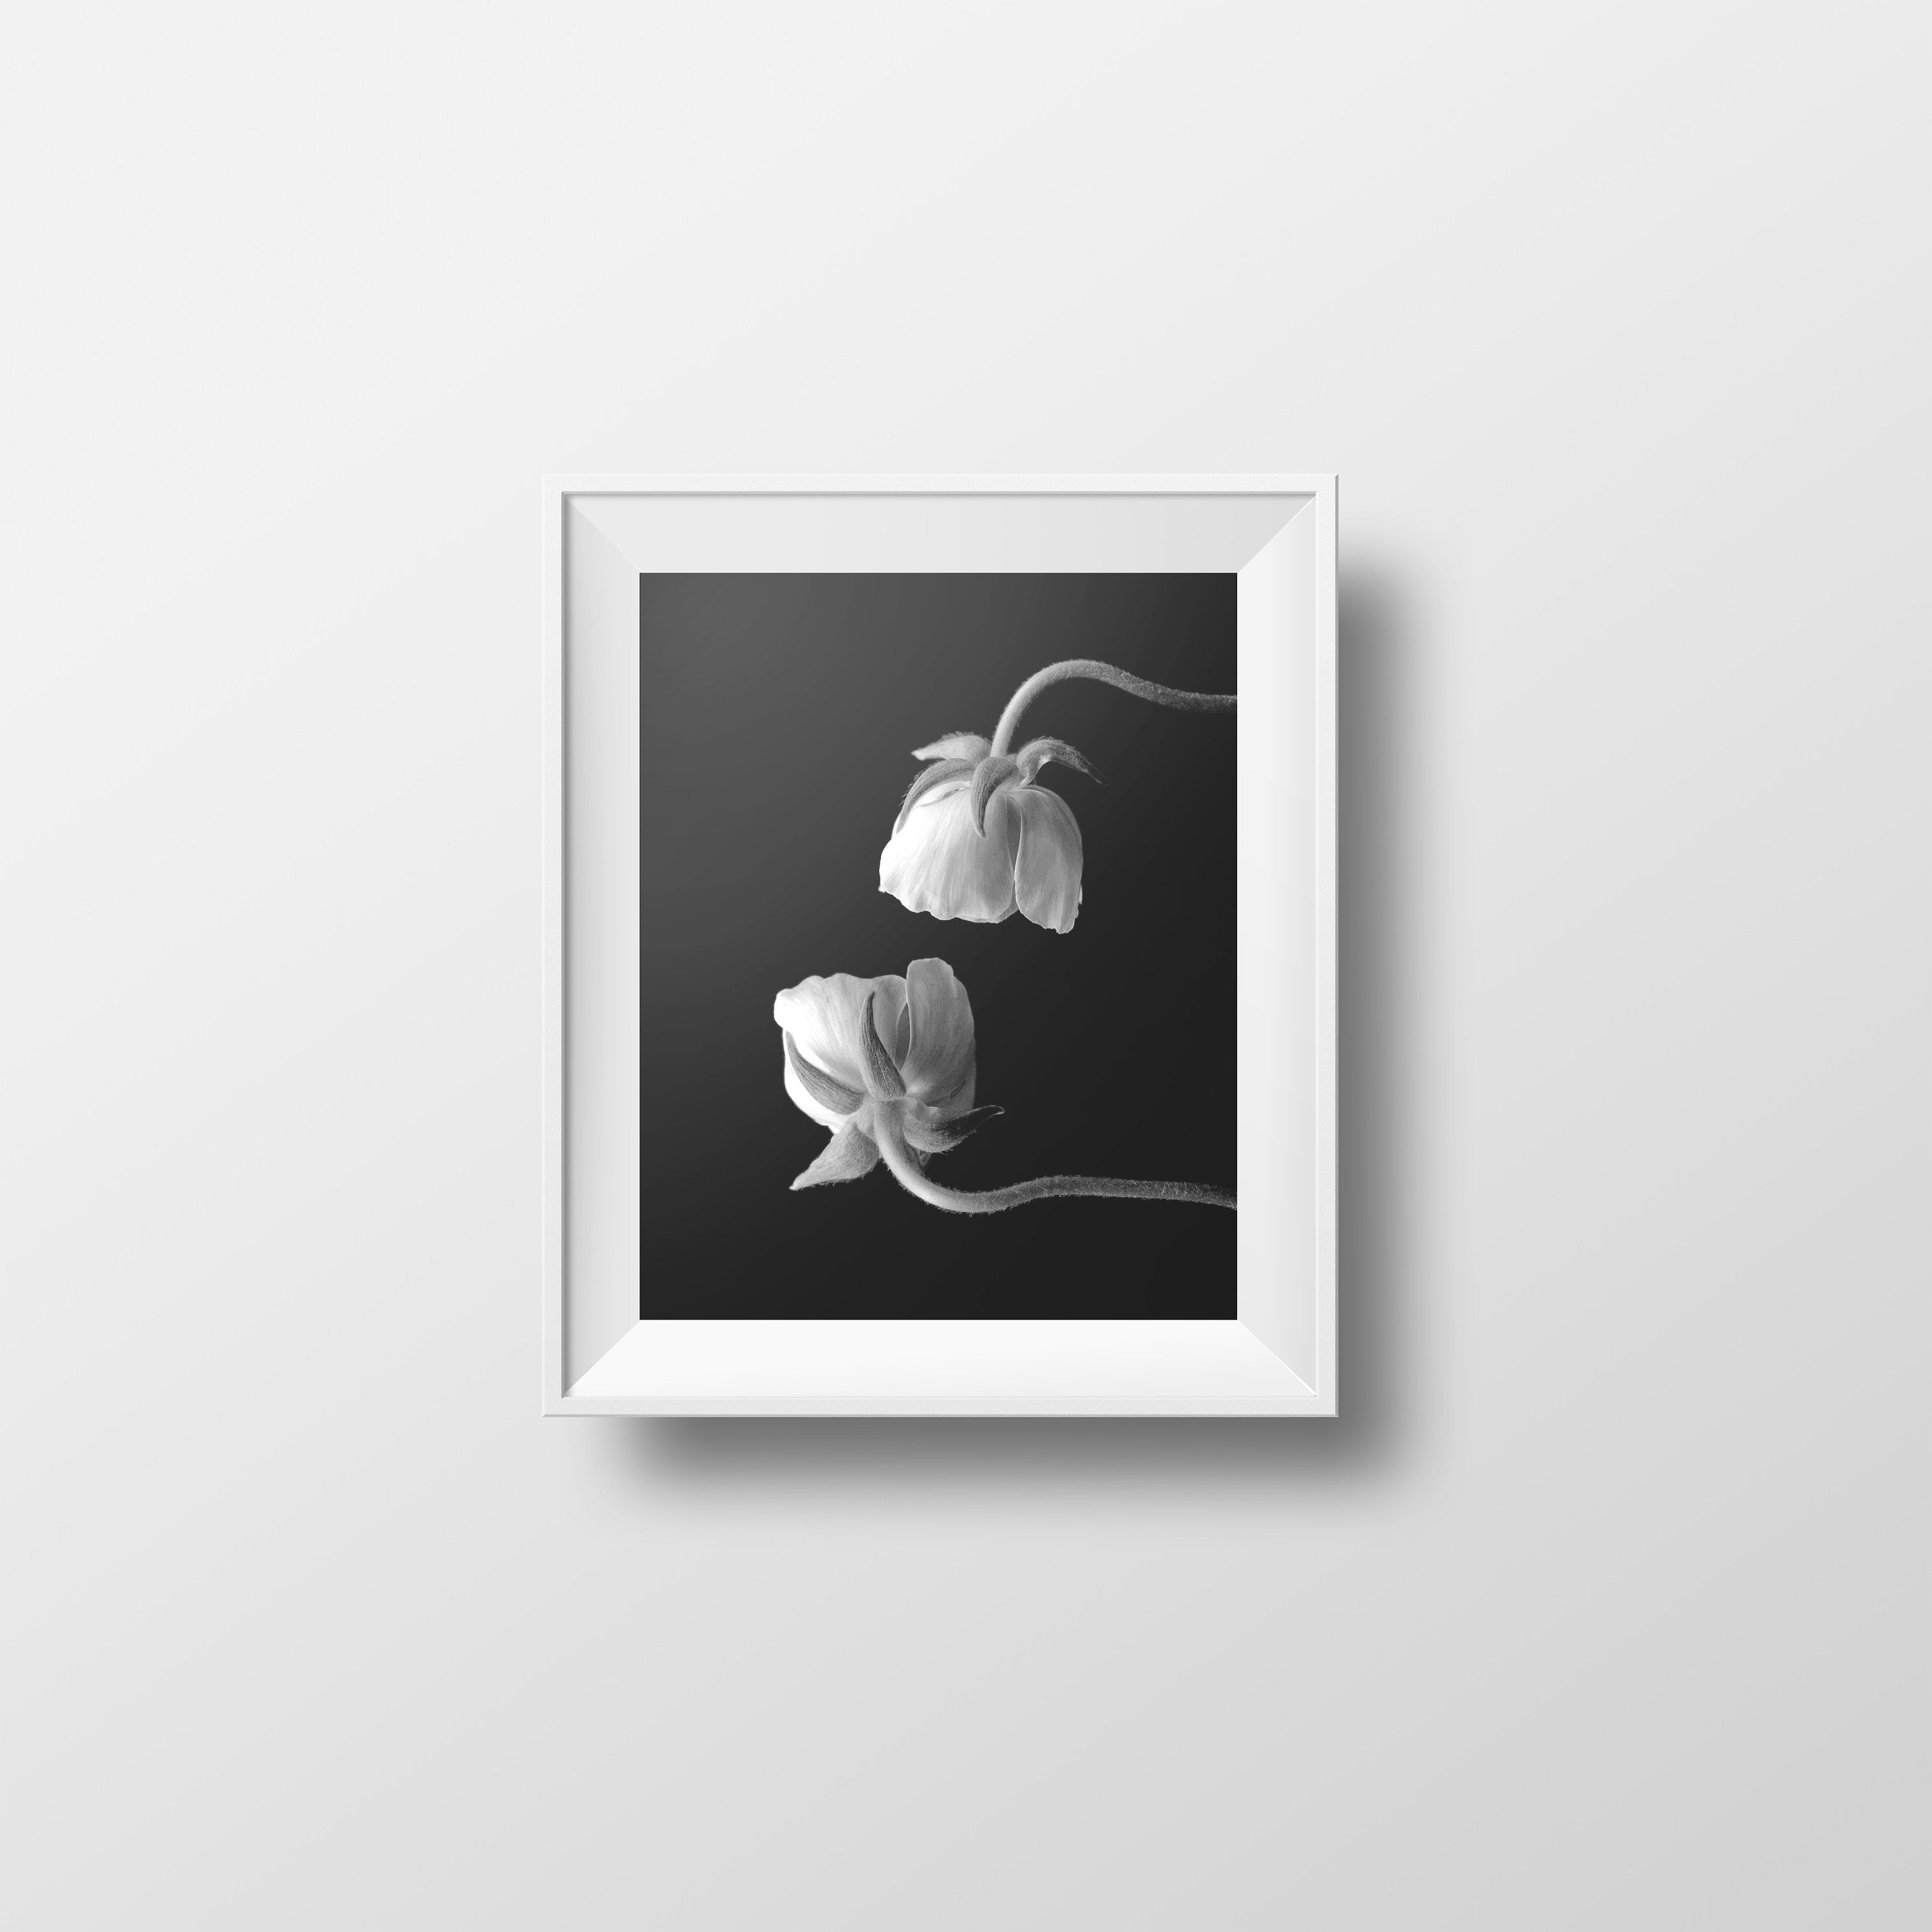 Flower print ranunculus print black white photography dark floral minimalist decor 5x7 8x10 11x14 16x20 18x24 24x30 poster floral photo by olaholahola